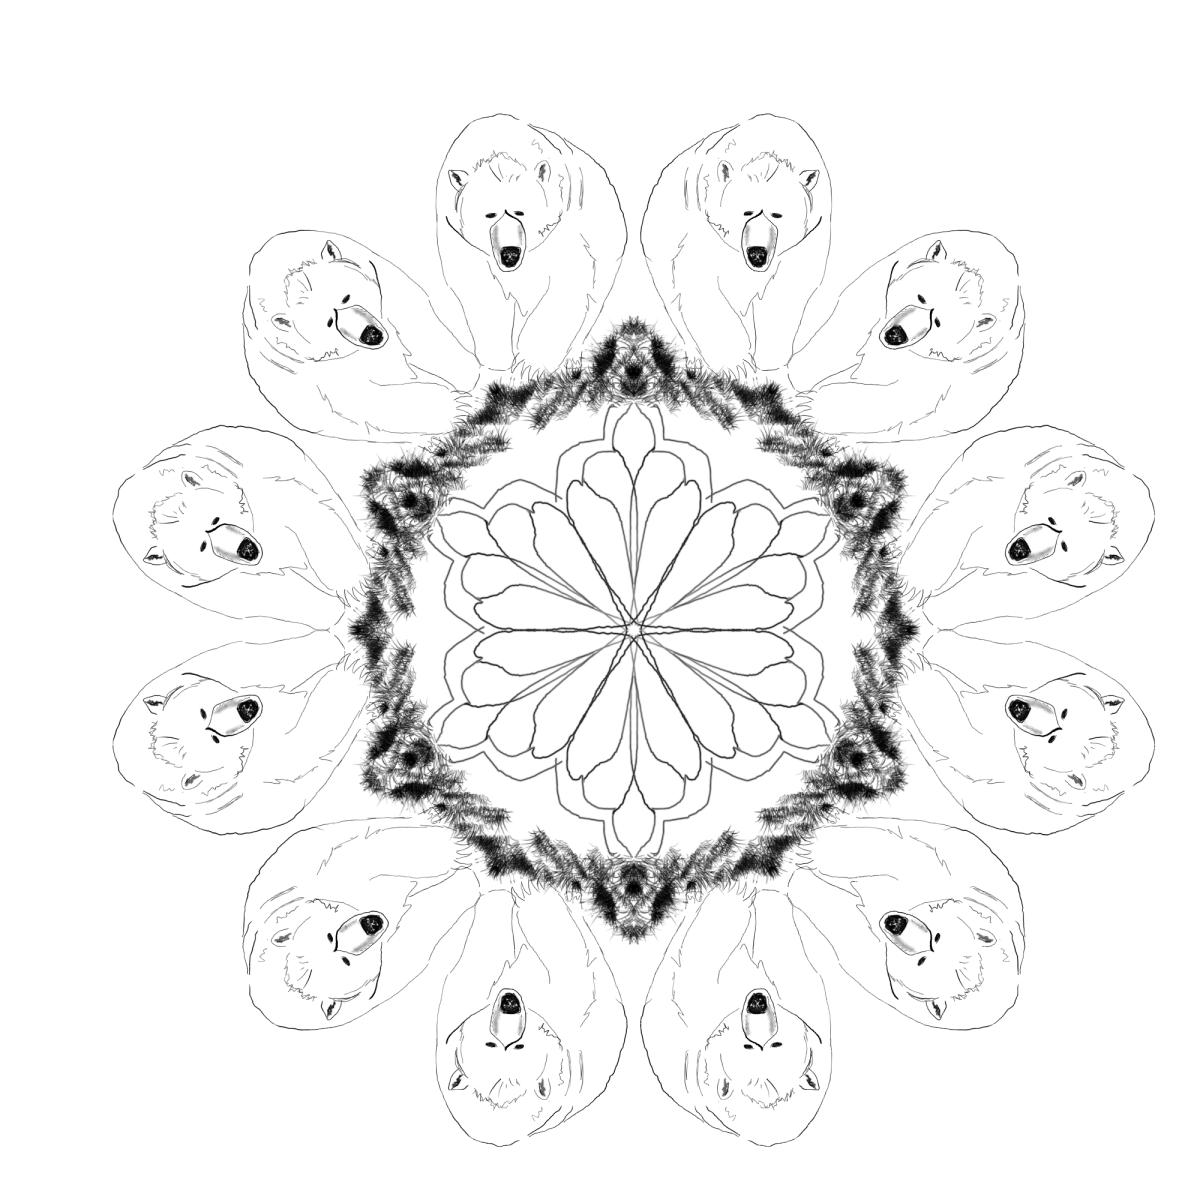 Bears surround a mandala design in this free printable adult coloring page.